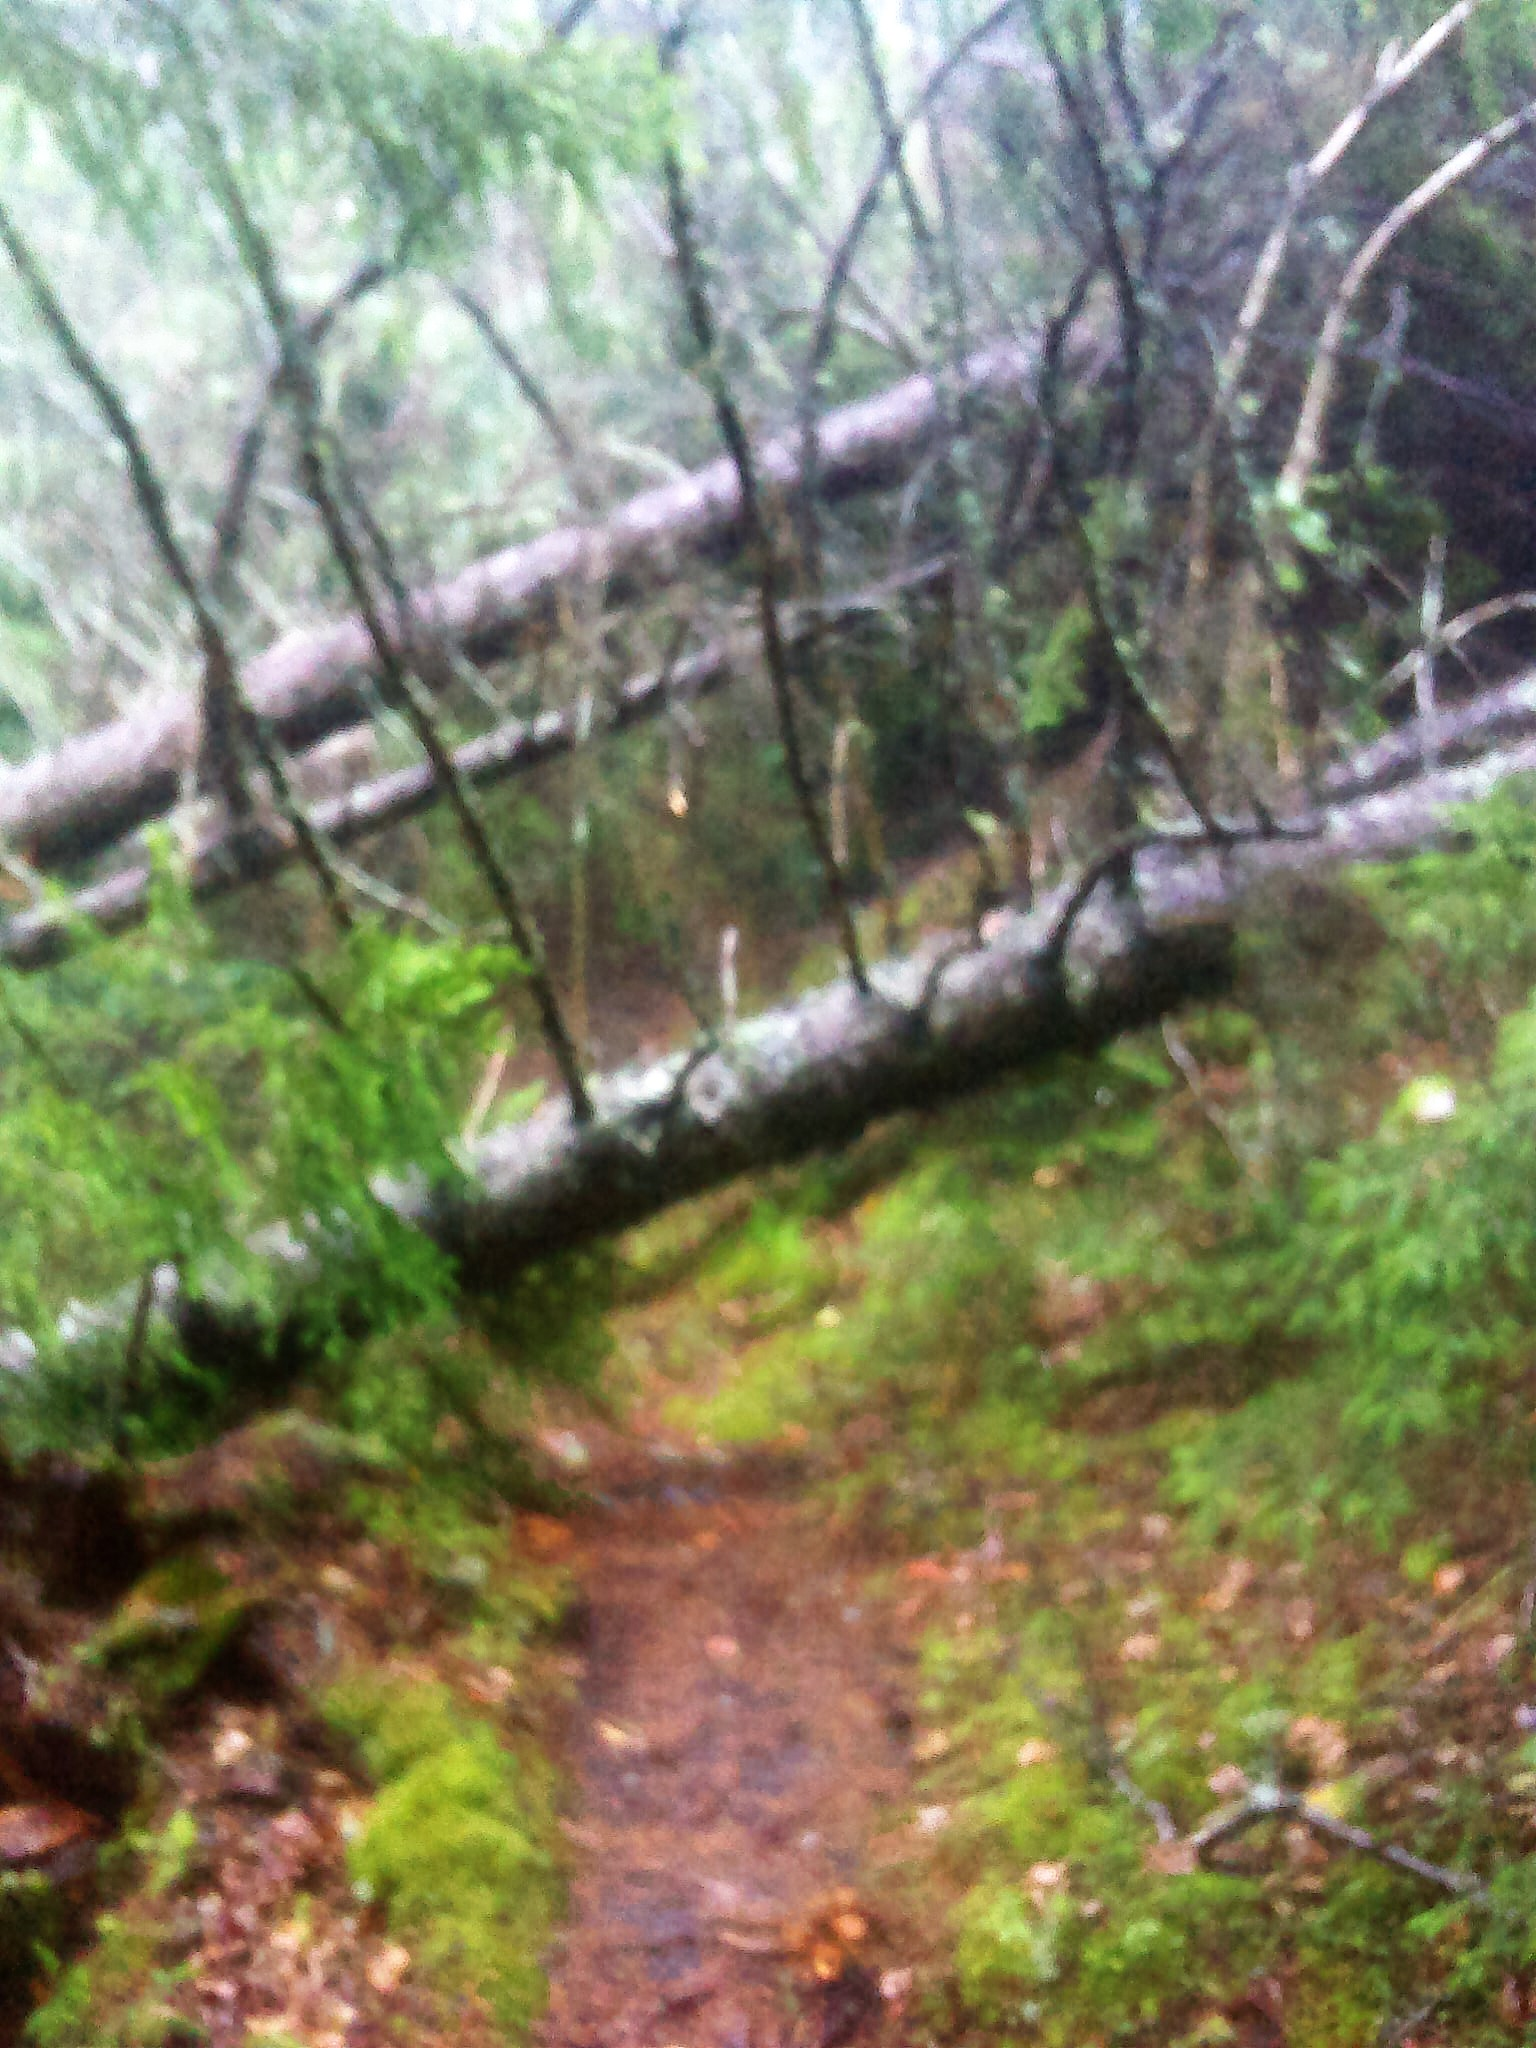 A fuzzy shot of the blowdown taken in the rain minutes after it happened